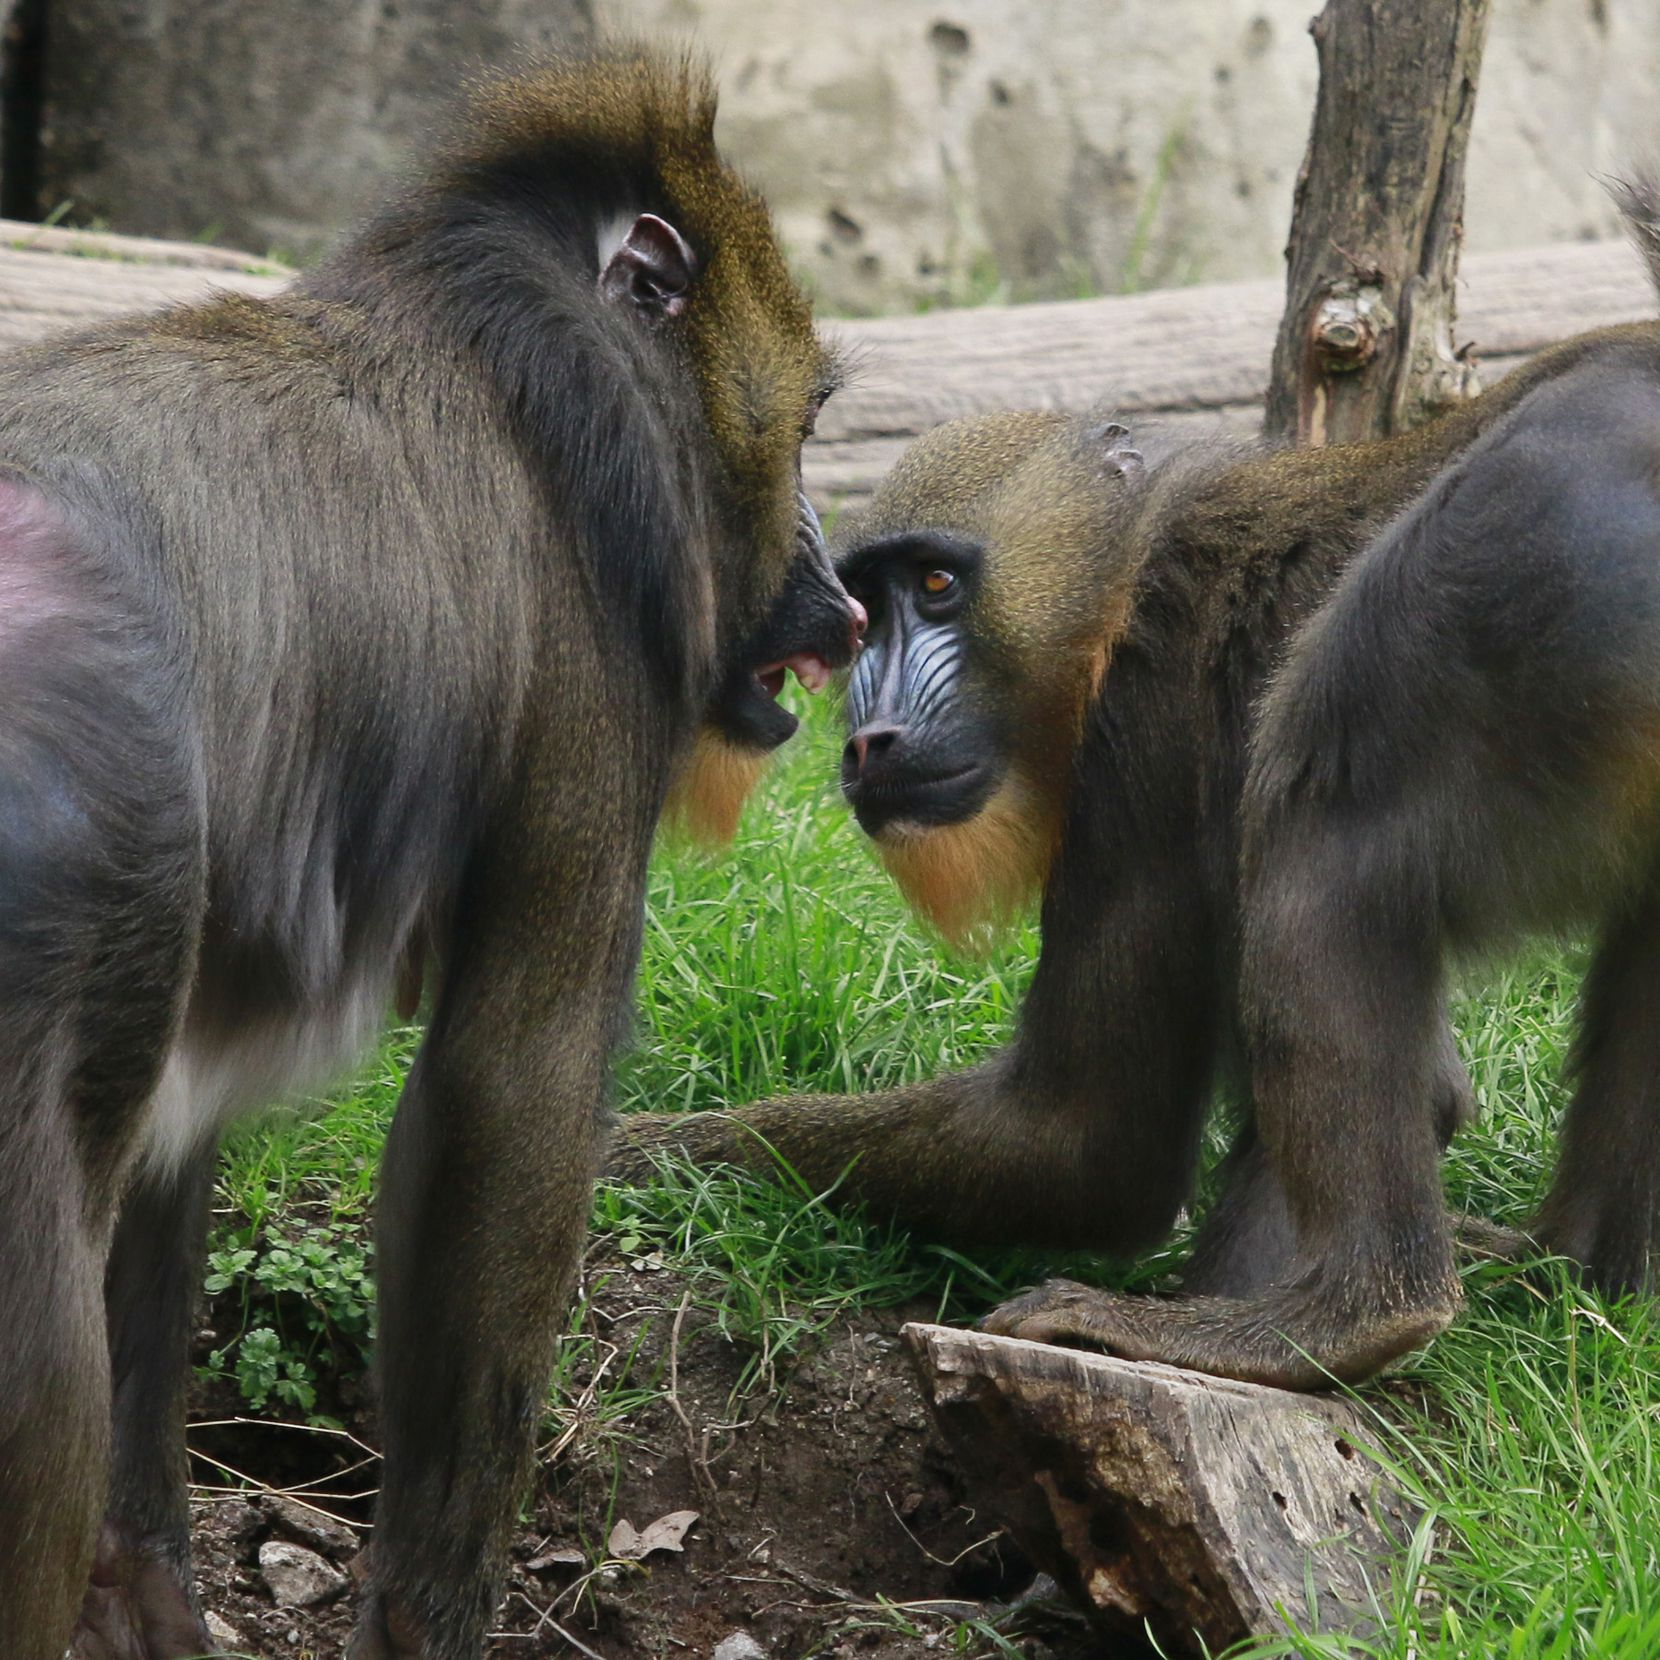 Obi and mother Saffron at the Dallas Zoo. When he was born in 2014, Obi was the first baby mandrill at the zoo in 24 years.